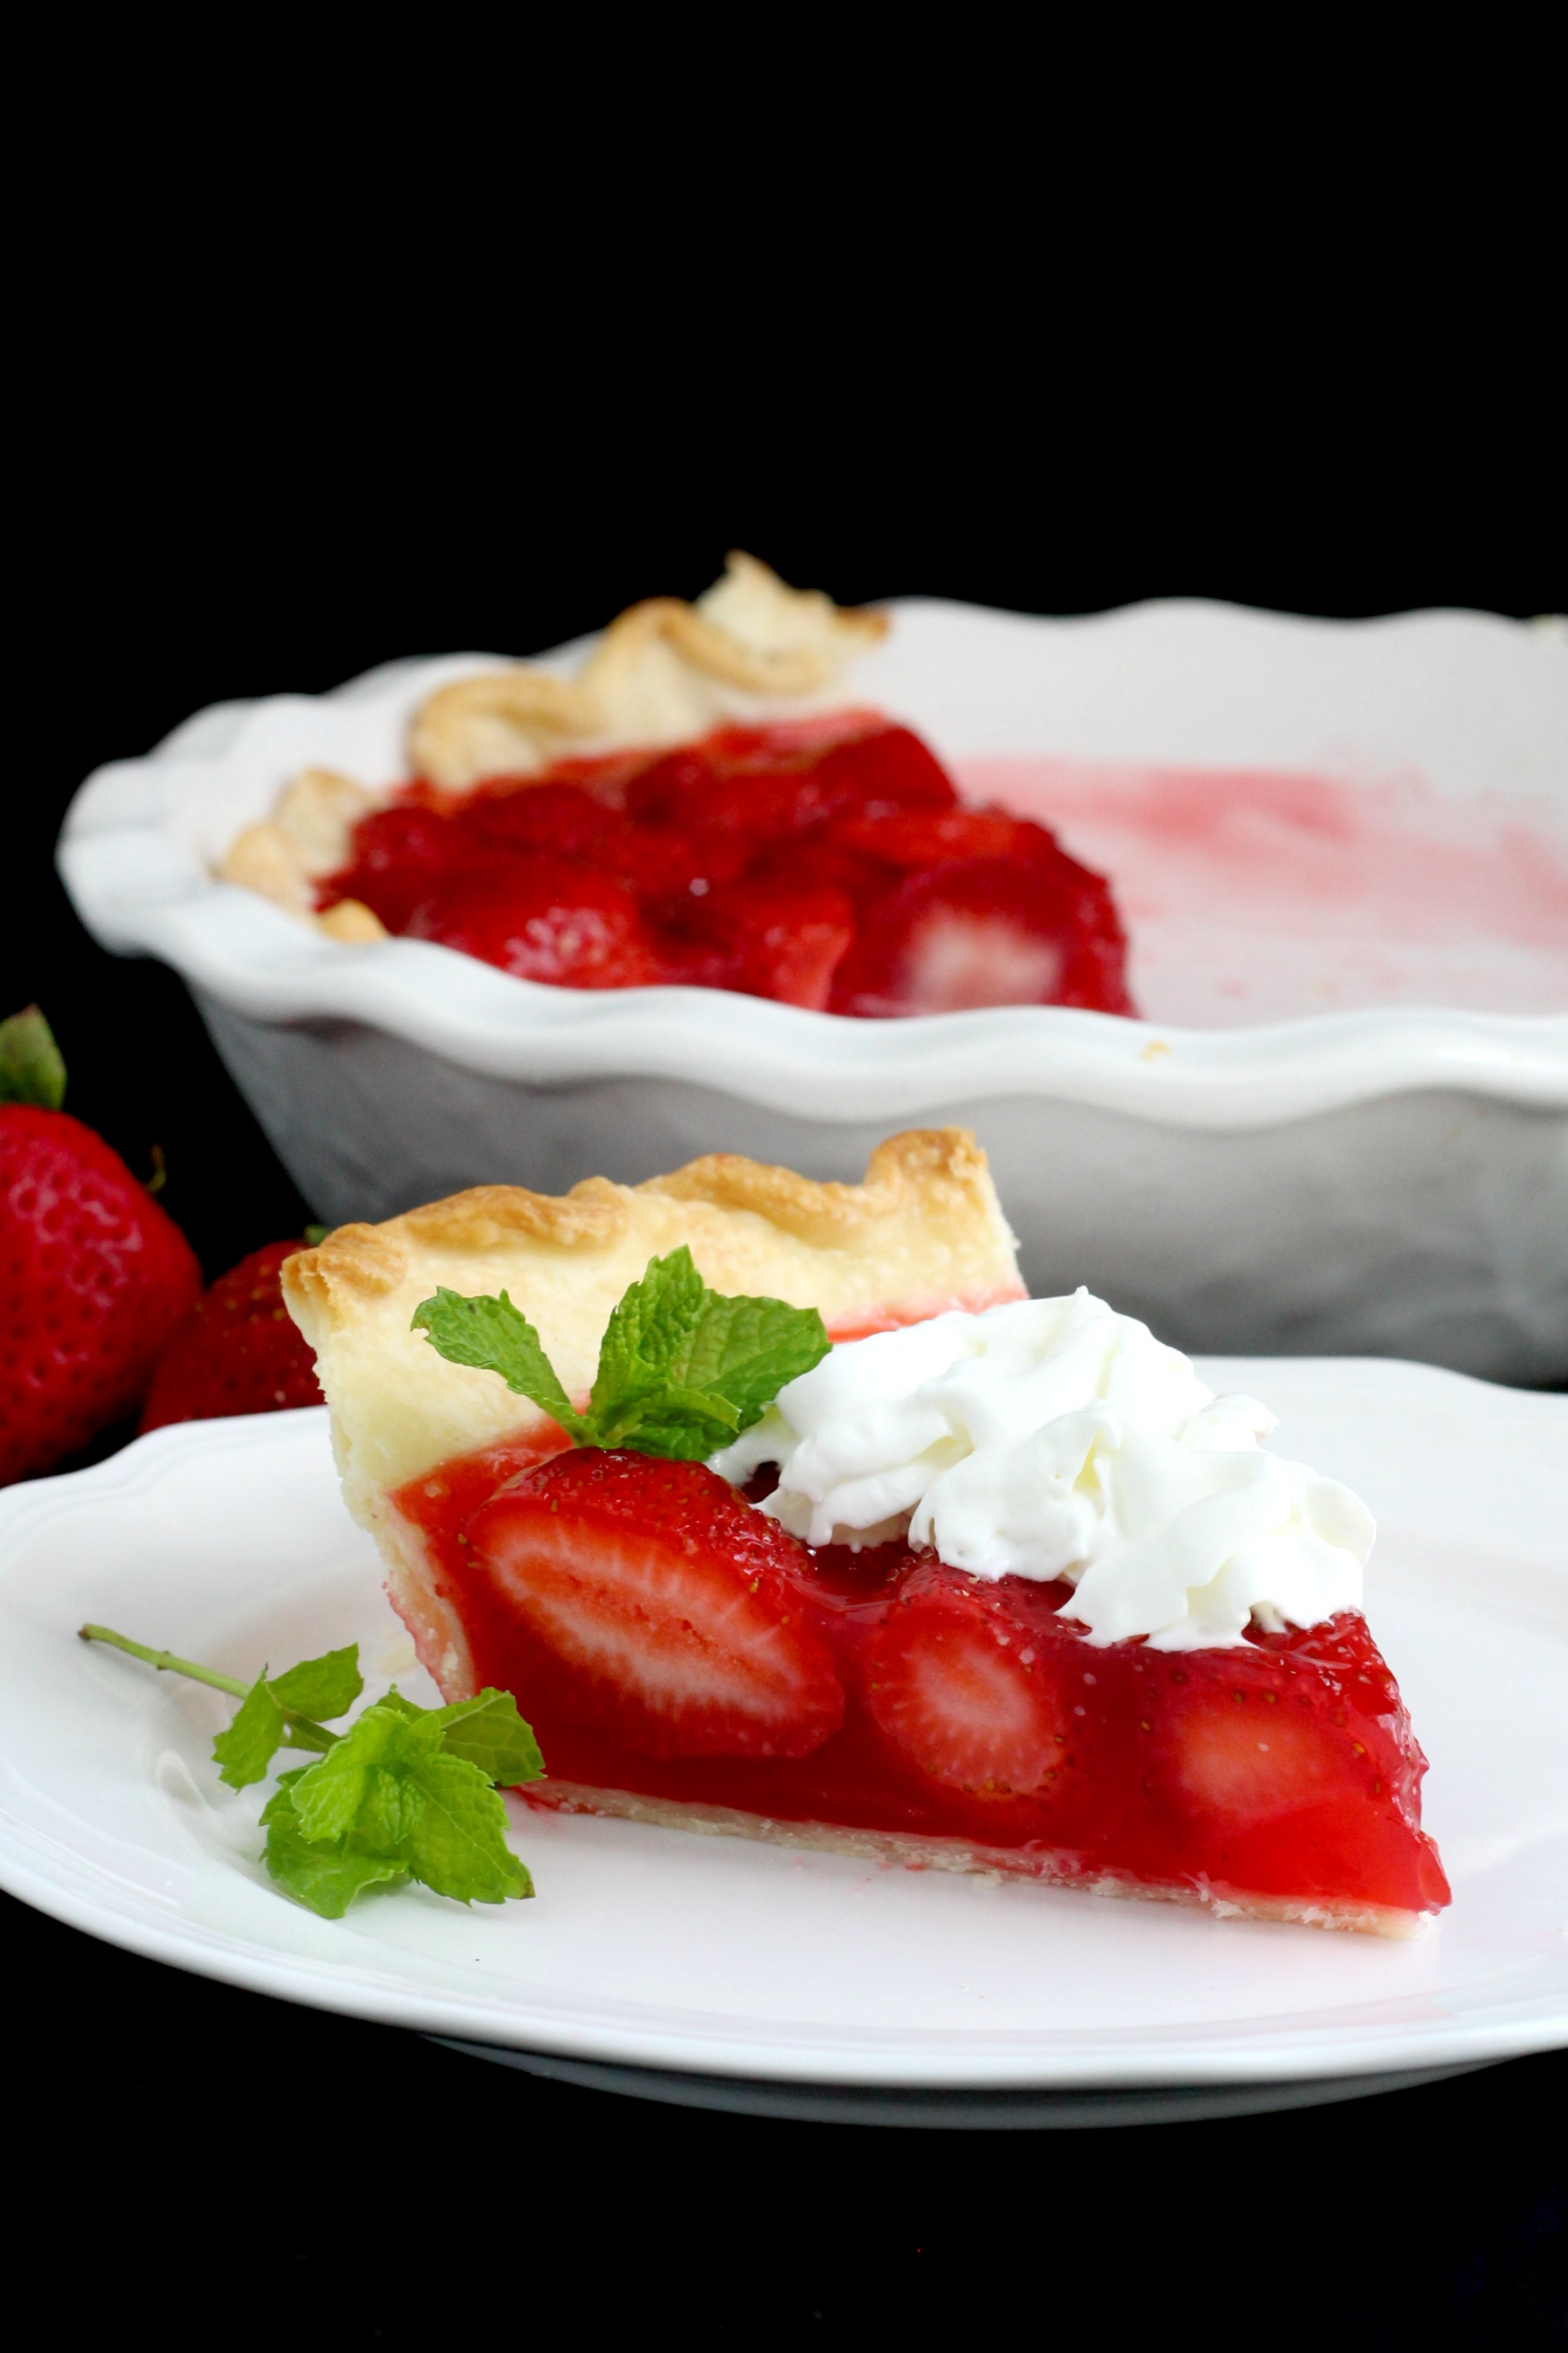 Fresh Strawberry Pie recipe sweet filling of jello in crust with whipped cream gratefulprayerthankfulheart.com